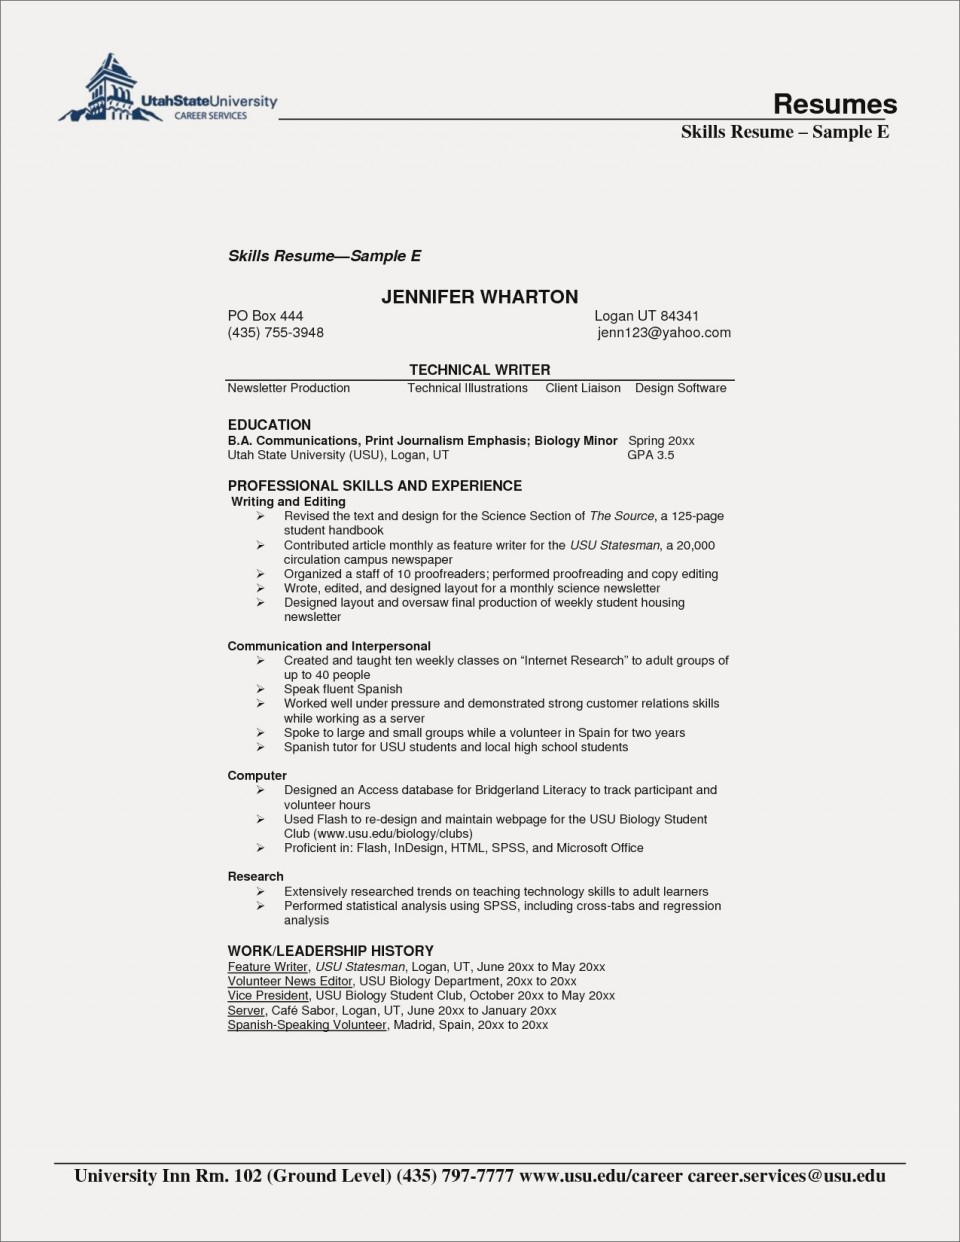 014 Biology Research Paper Lovely Resume Skills Section Example Save Puter Unique Of Remarkable Sample Format 960